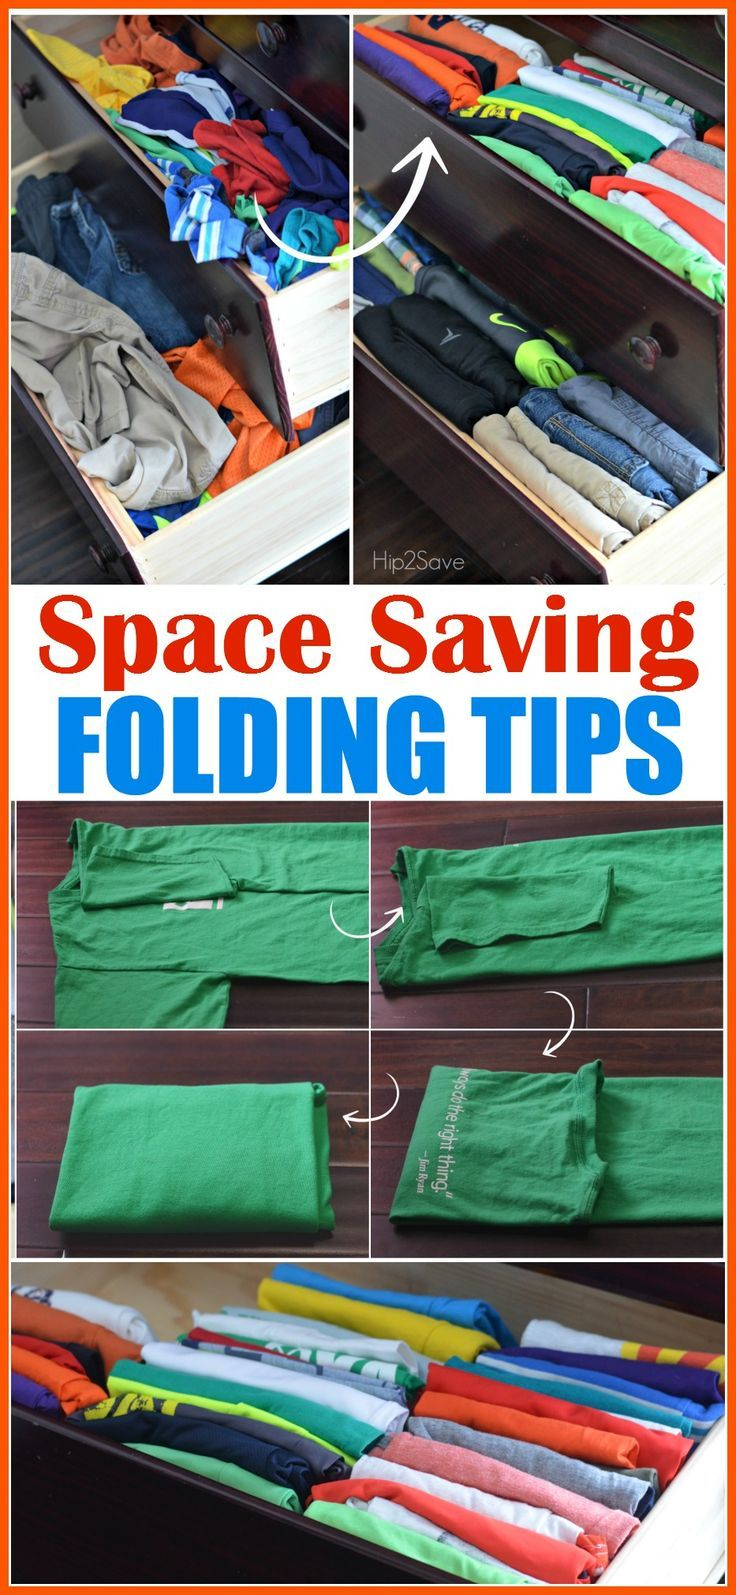 Best way to fold clothes for suitcase - How To Fold Clothes To Save Space Organizing Tip Using Konmari Folding Method